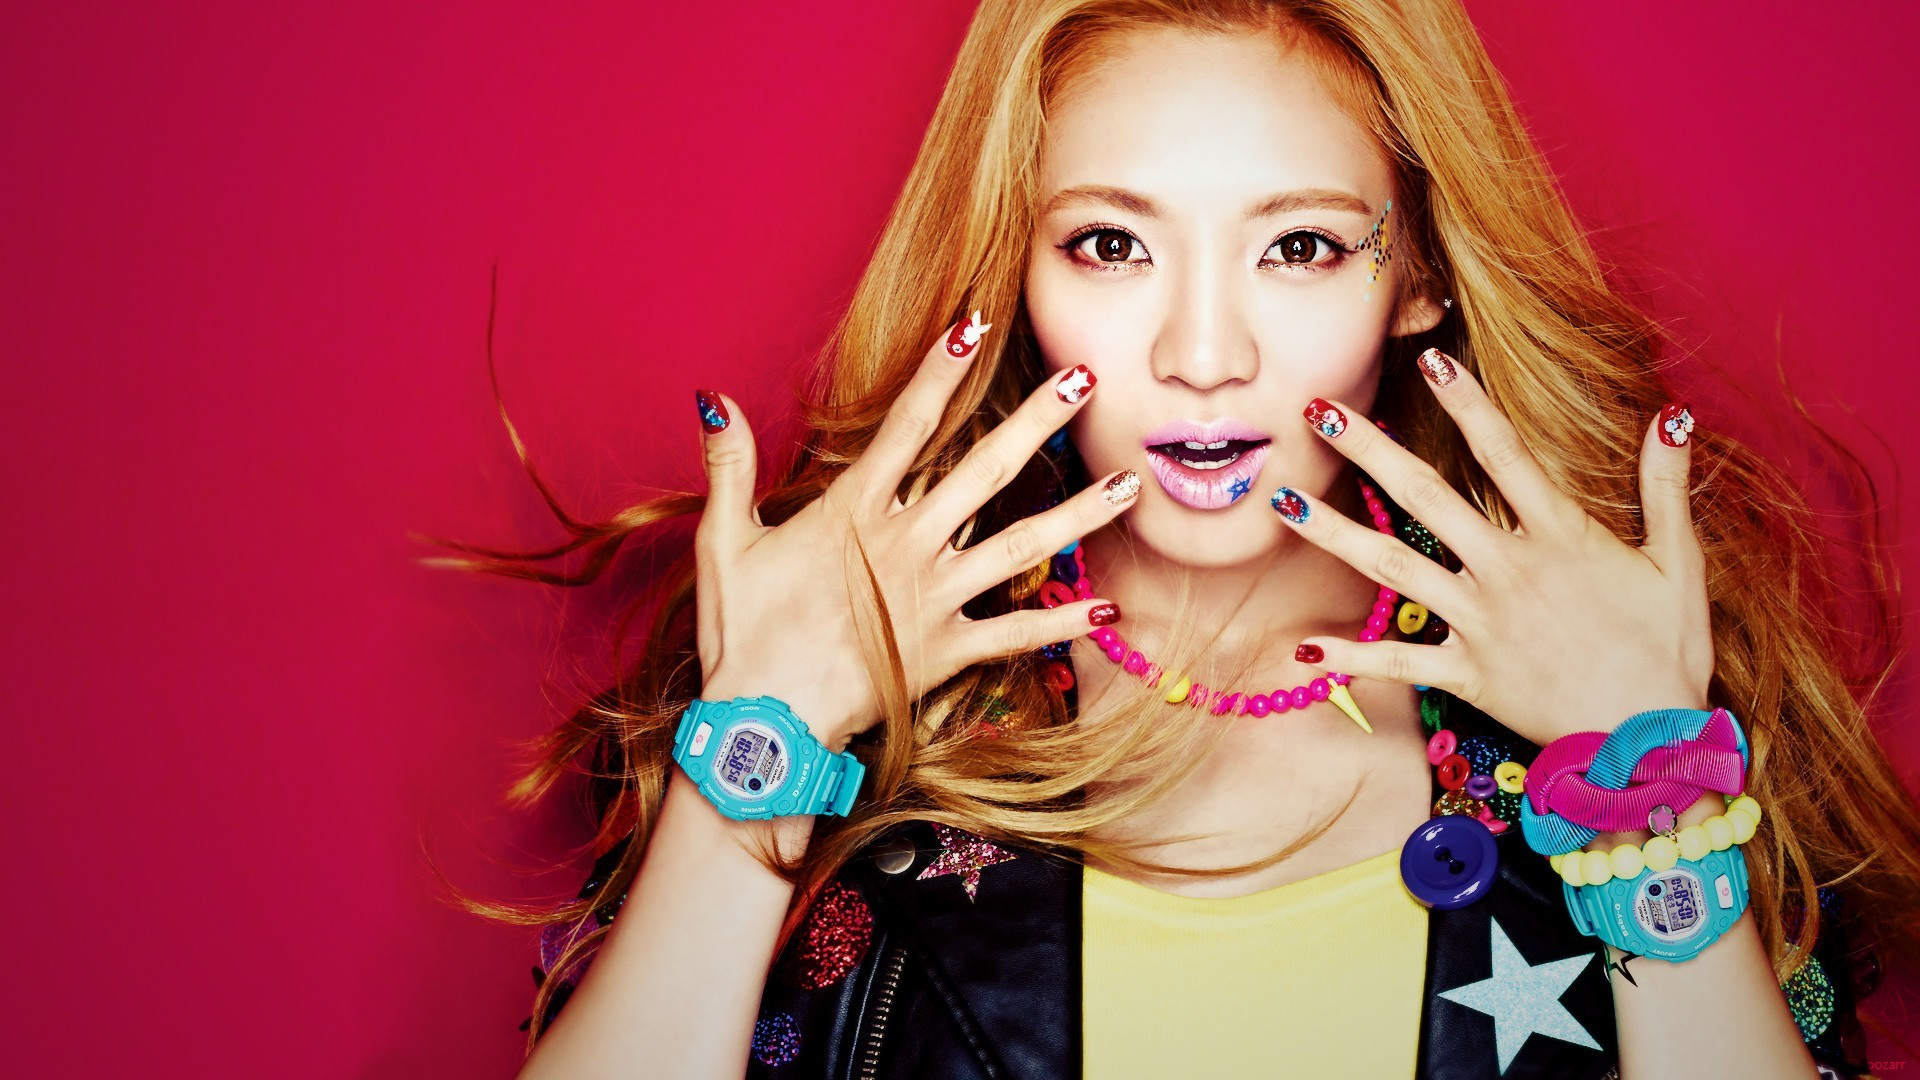 Res: 1920x1080, Snsd Wallpapers Best Of soshipapers Snsd Hyoyeon Wallpaper android Pinterest